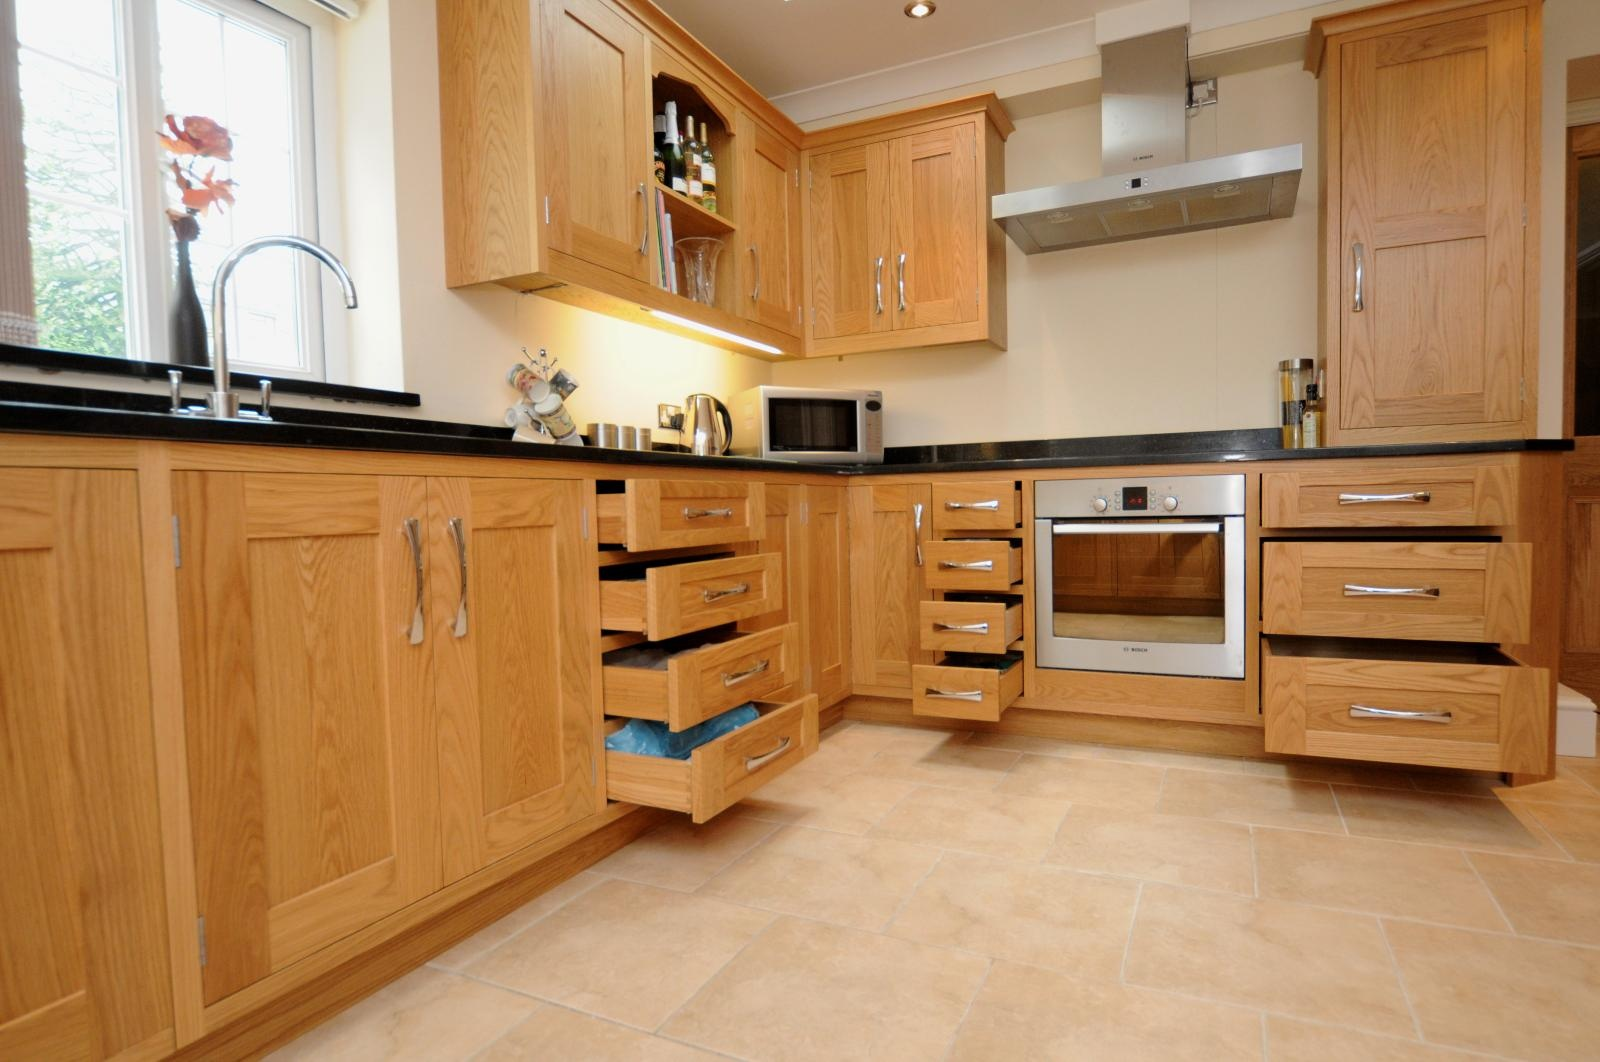 oak shaker kitchen st davids mark stone 39 s welsh kitchens bespoke